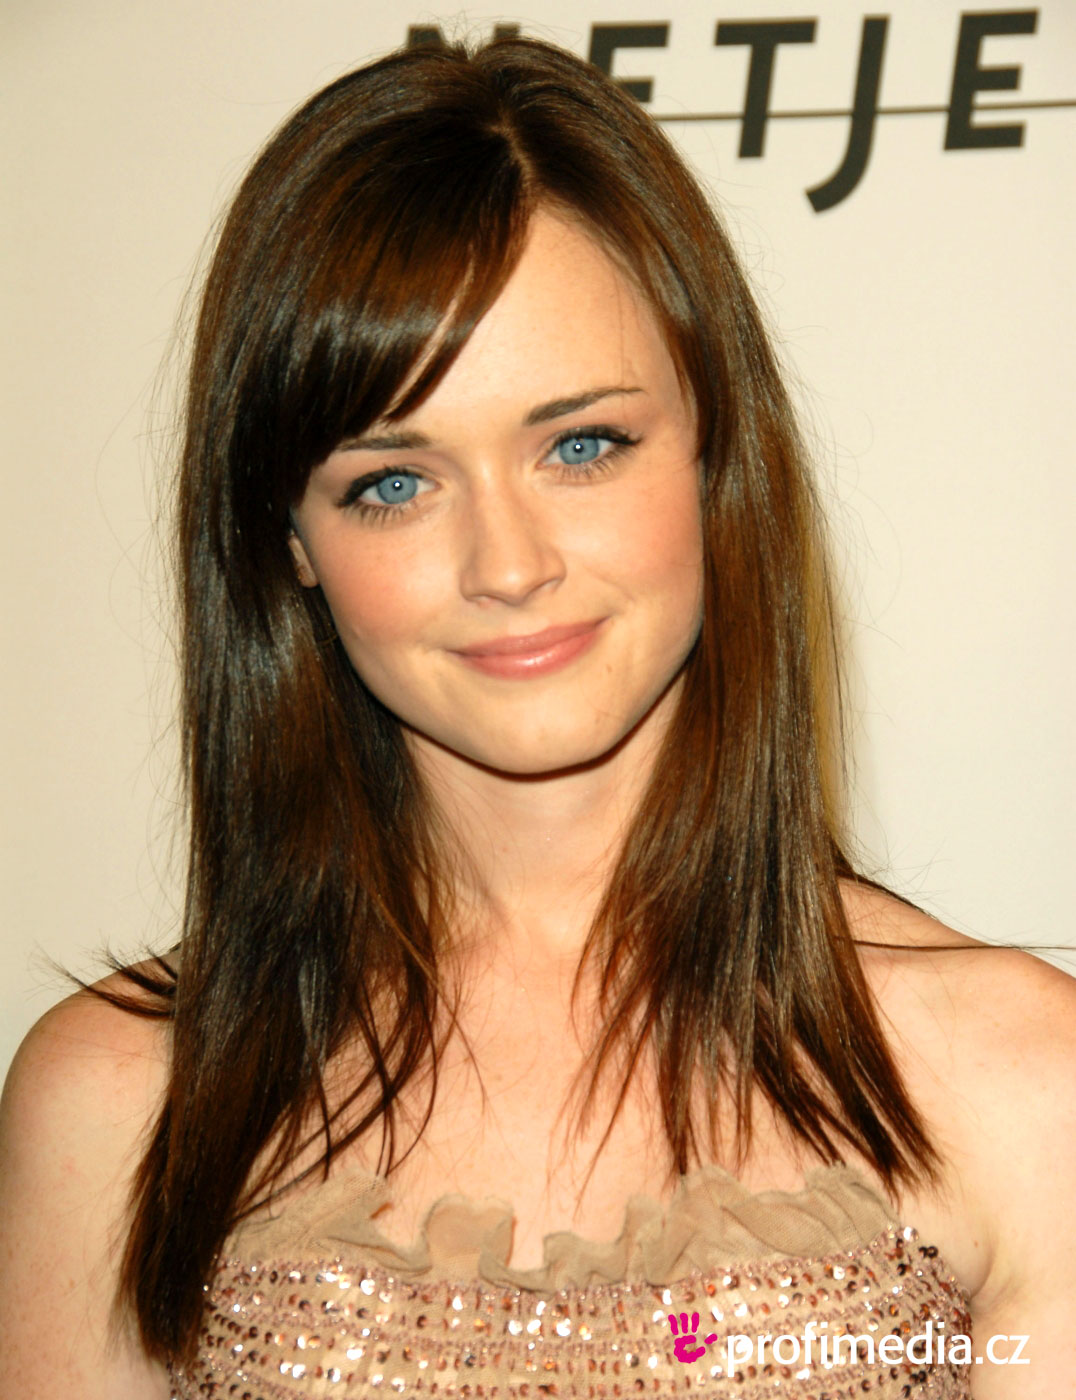 Long Wavy Cute Hairstyles, Long Hairstyle 2011, Hairstyle 2011, New Long Hairstyle 2011, Celebrity Long Hairstyles 2130